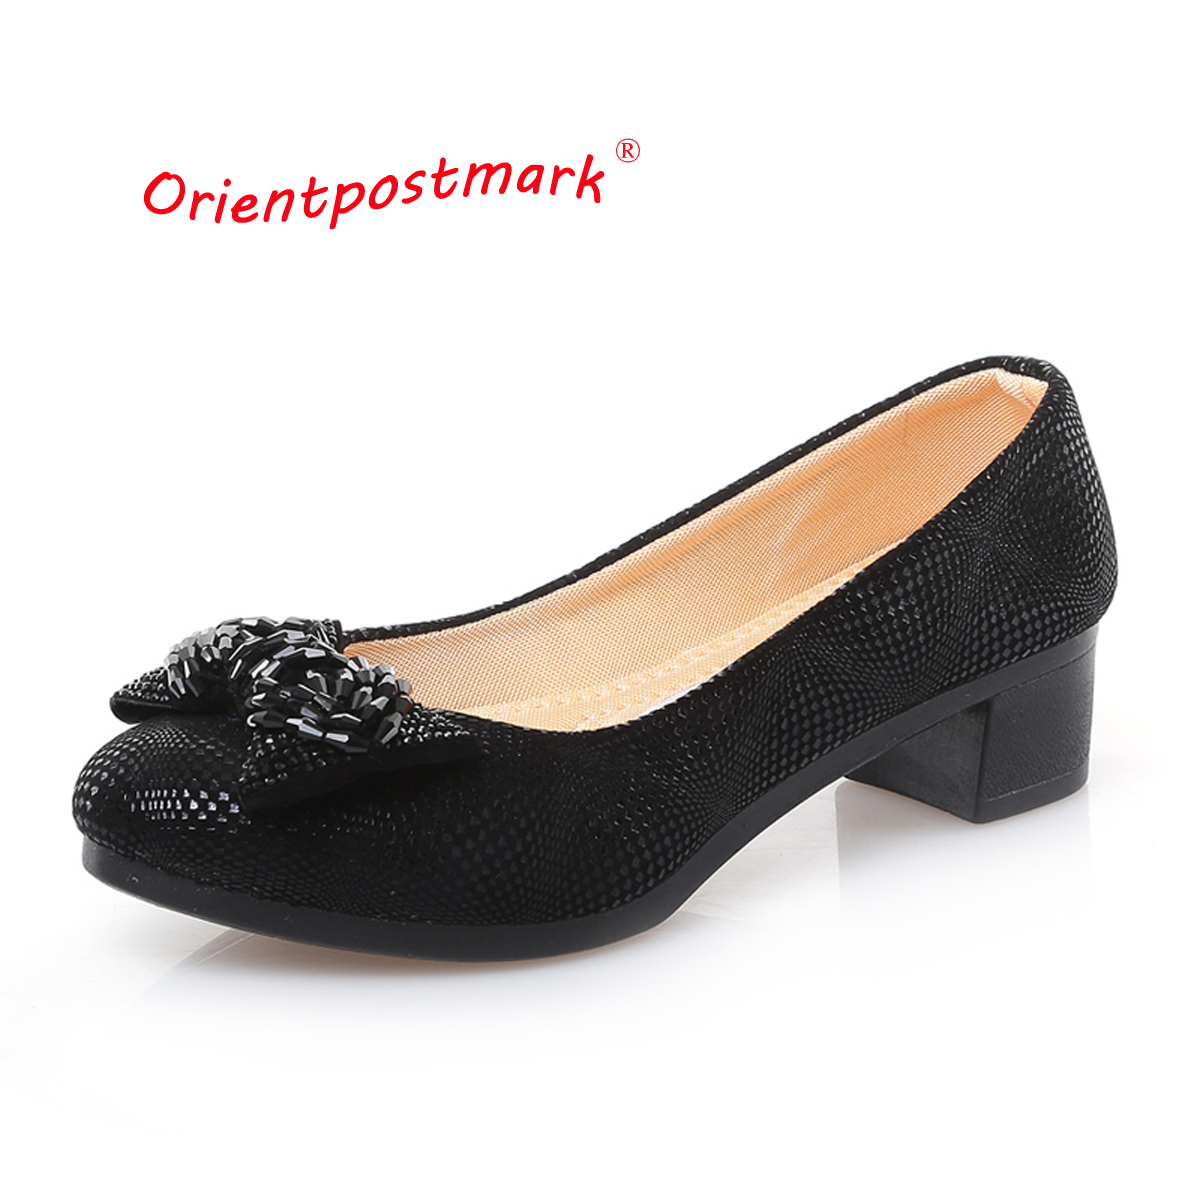 Heels Shoes Sweet Loafers for Spring Autumn Shoes Breathable Women Heels Shoes Women Ballet Shoes Orientpostmark sweet loafers women heels shoes for spring women ballet shoes breathable heels shoes autumn shoes orientpostmark